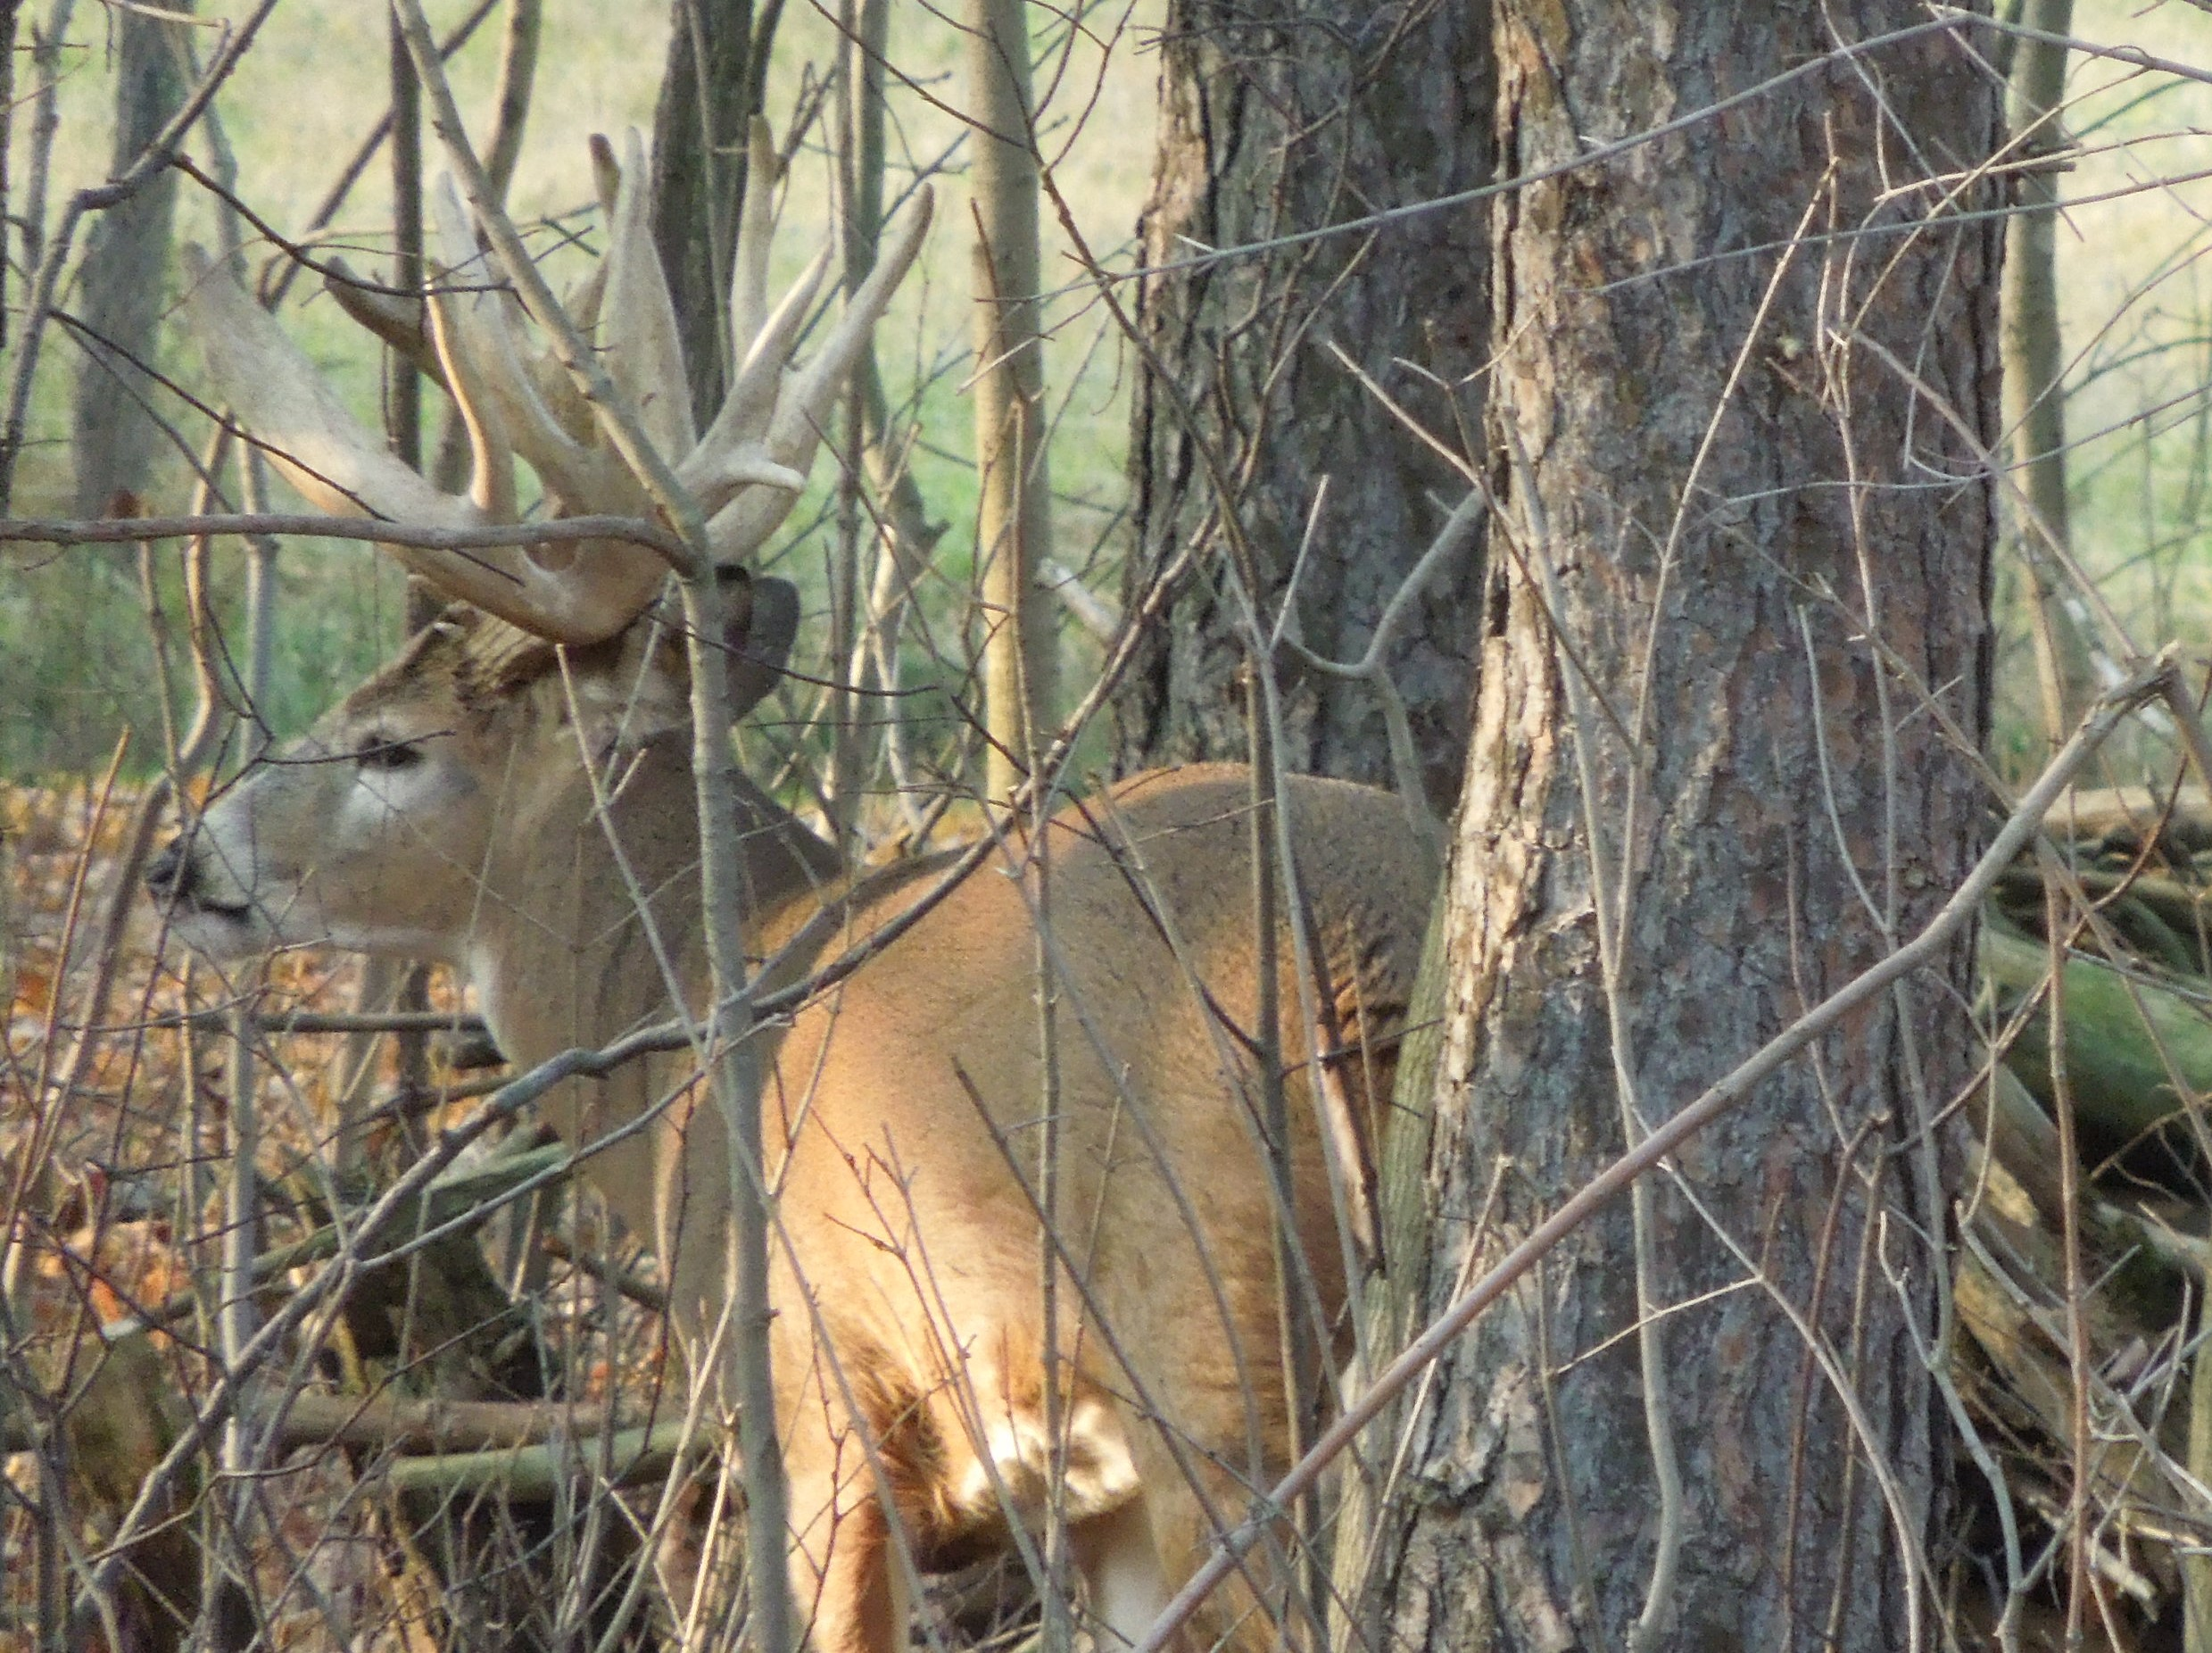 Hot Whitetail Doe's Search for Mr. Right Buck